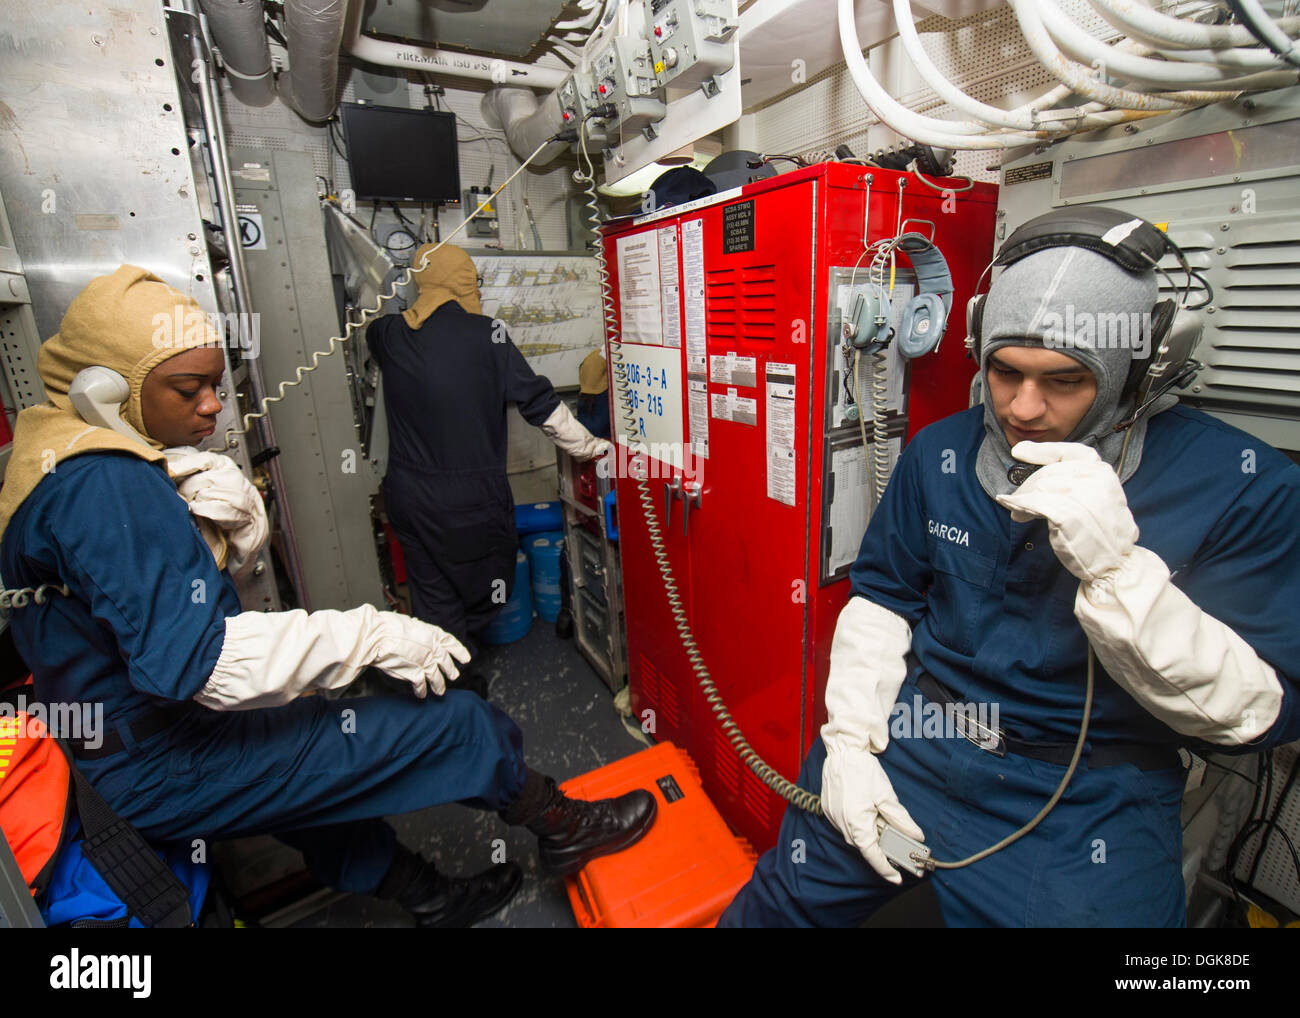 Ship's Serviceman Seaman Christopher Garcia, right, and Ship's Serviceman Seaman Naomi Dunkley serve as phone talkers during a general quarters drill aboard the Arleigh Burke-class guided-missile destroyer USS Mustin (DDG 89). Mustin is on patrol with the - Stock Image